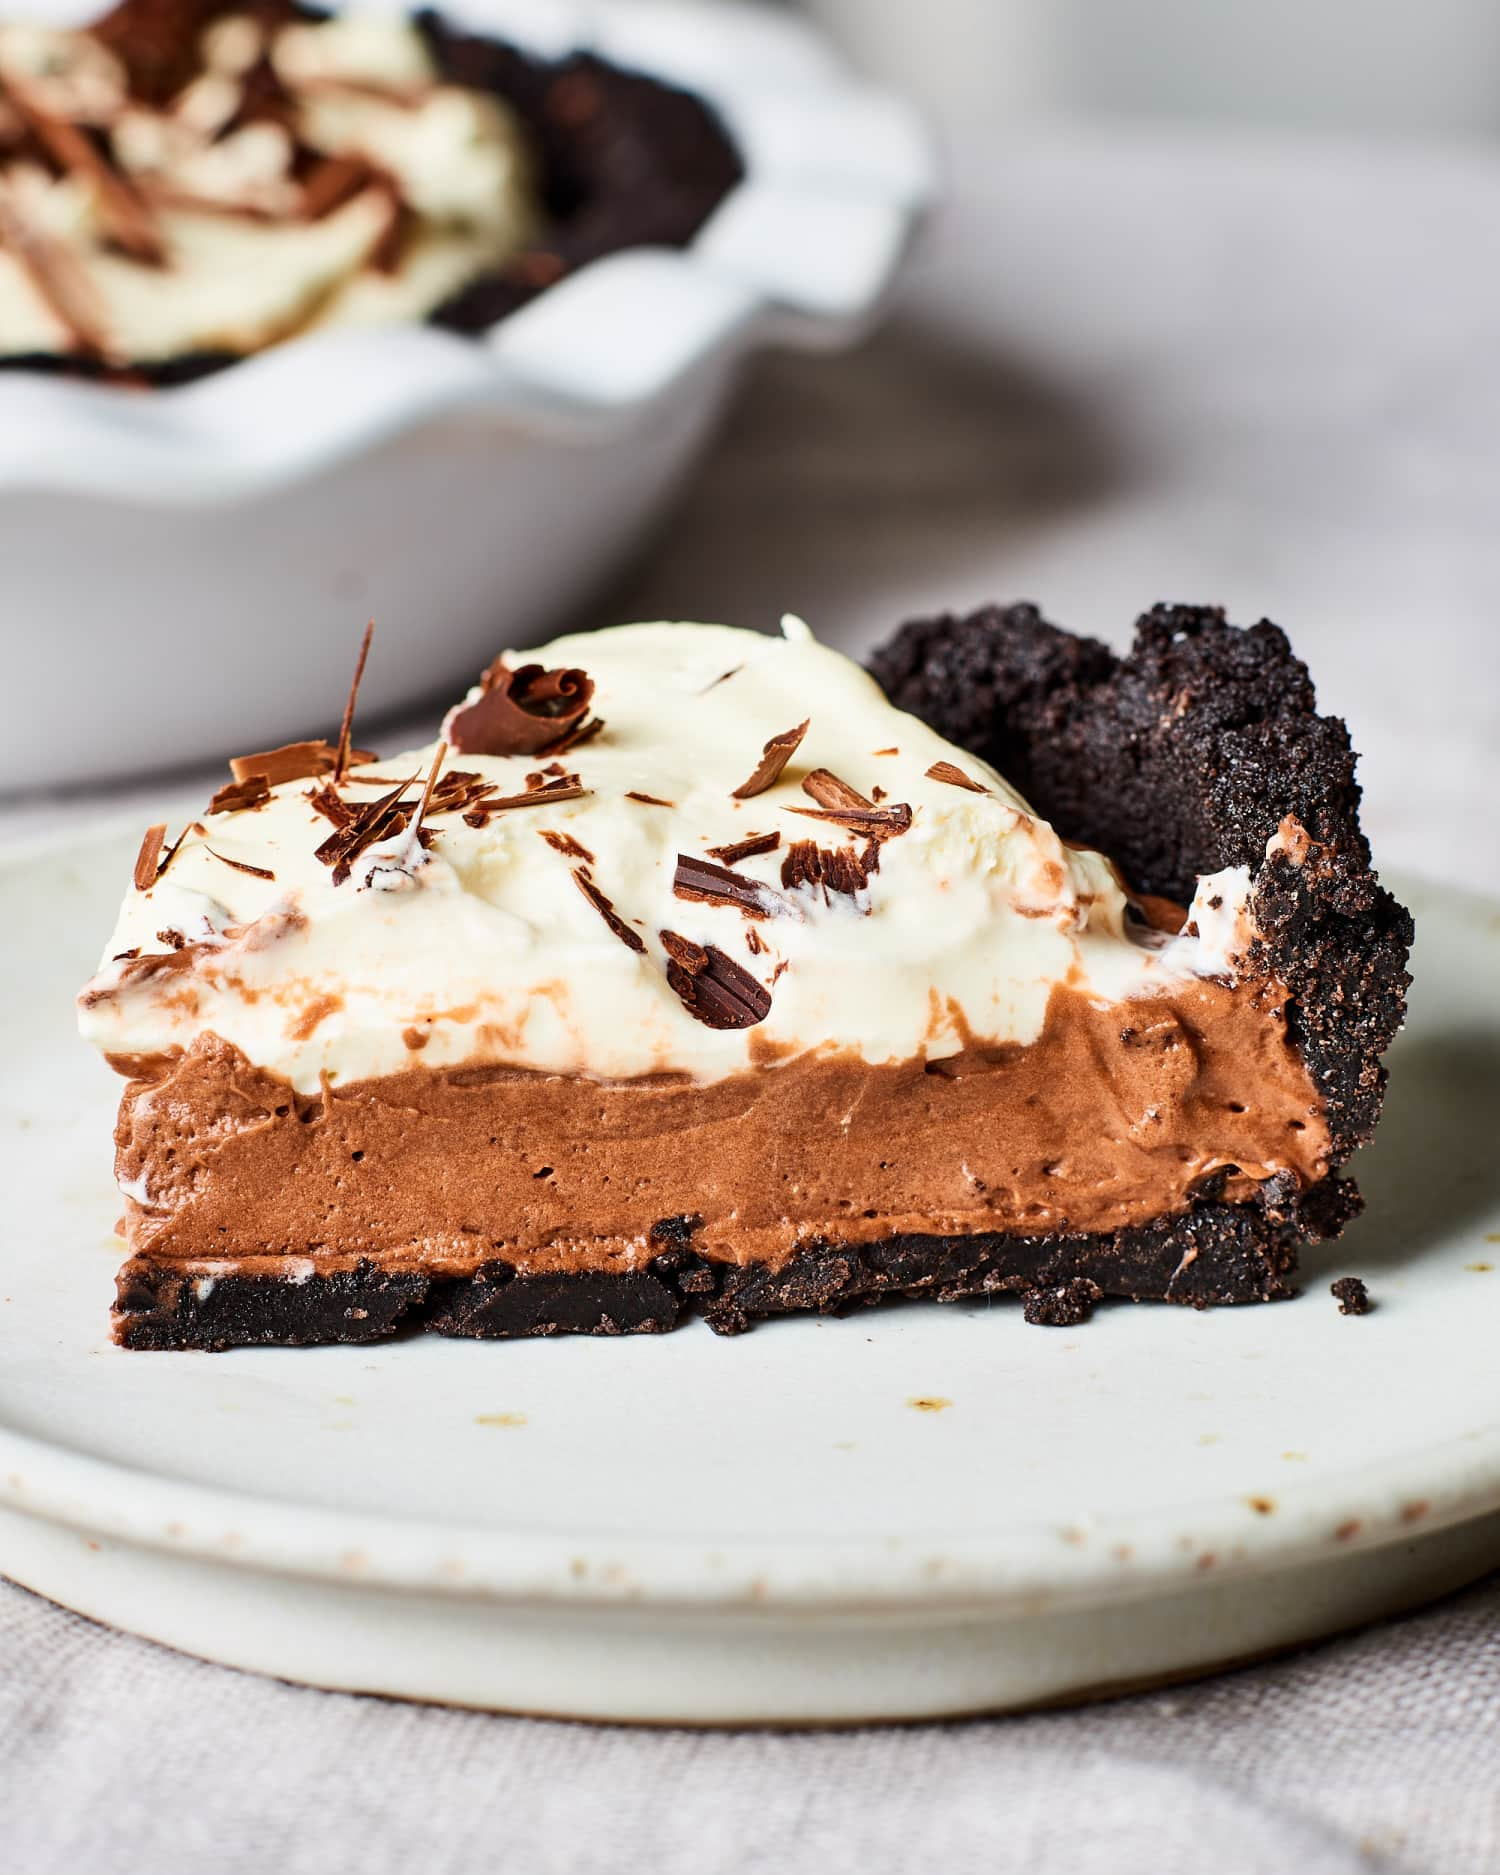 How To Make the Easiest No-Bake Chocolate Cream Pie